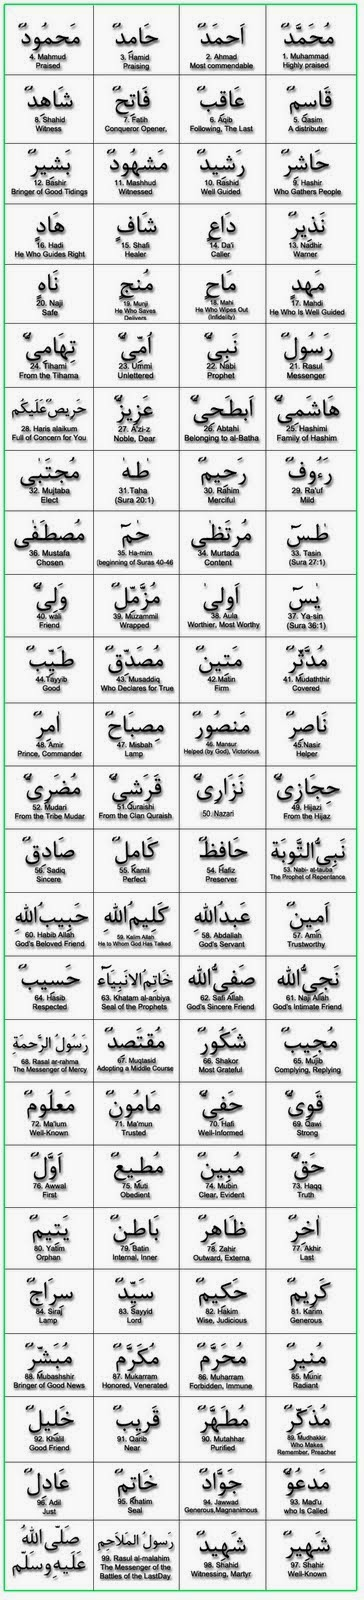 Pin on 99 Names of ALLAH